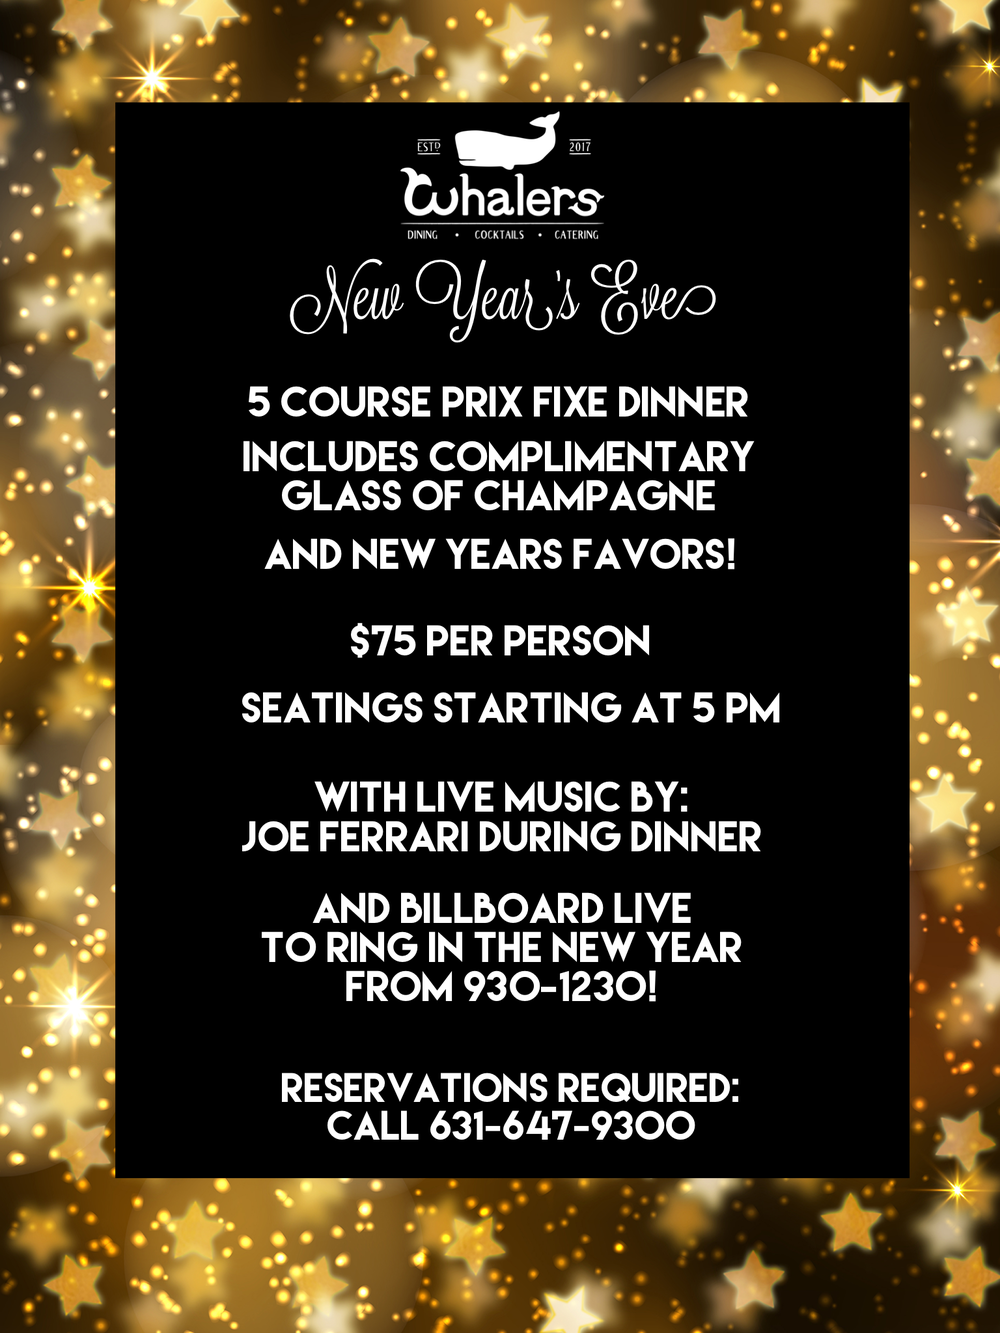 5 course prix fixe dinner  Includes complimentary glass of champagne for 21+  Includes complimentary new years favors  Music: Joe Ferrari during dinner and then Billboard Live at 930-1230 to ring in the new year  Click Image above for menu!    If you want to see the band only-$20 at the door includes a glass of champagne and a new years favor!